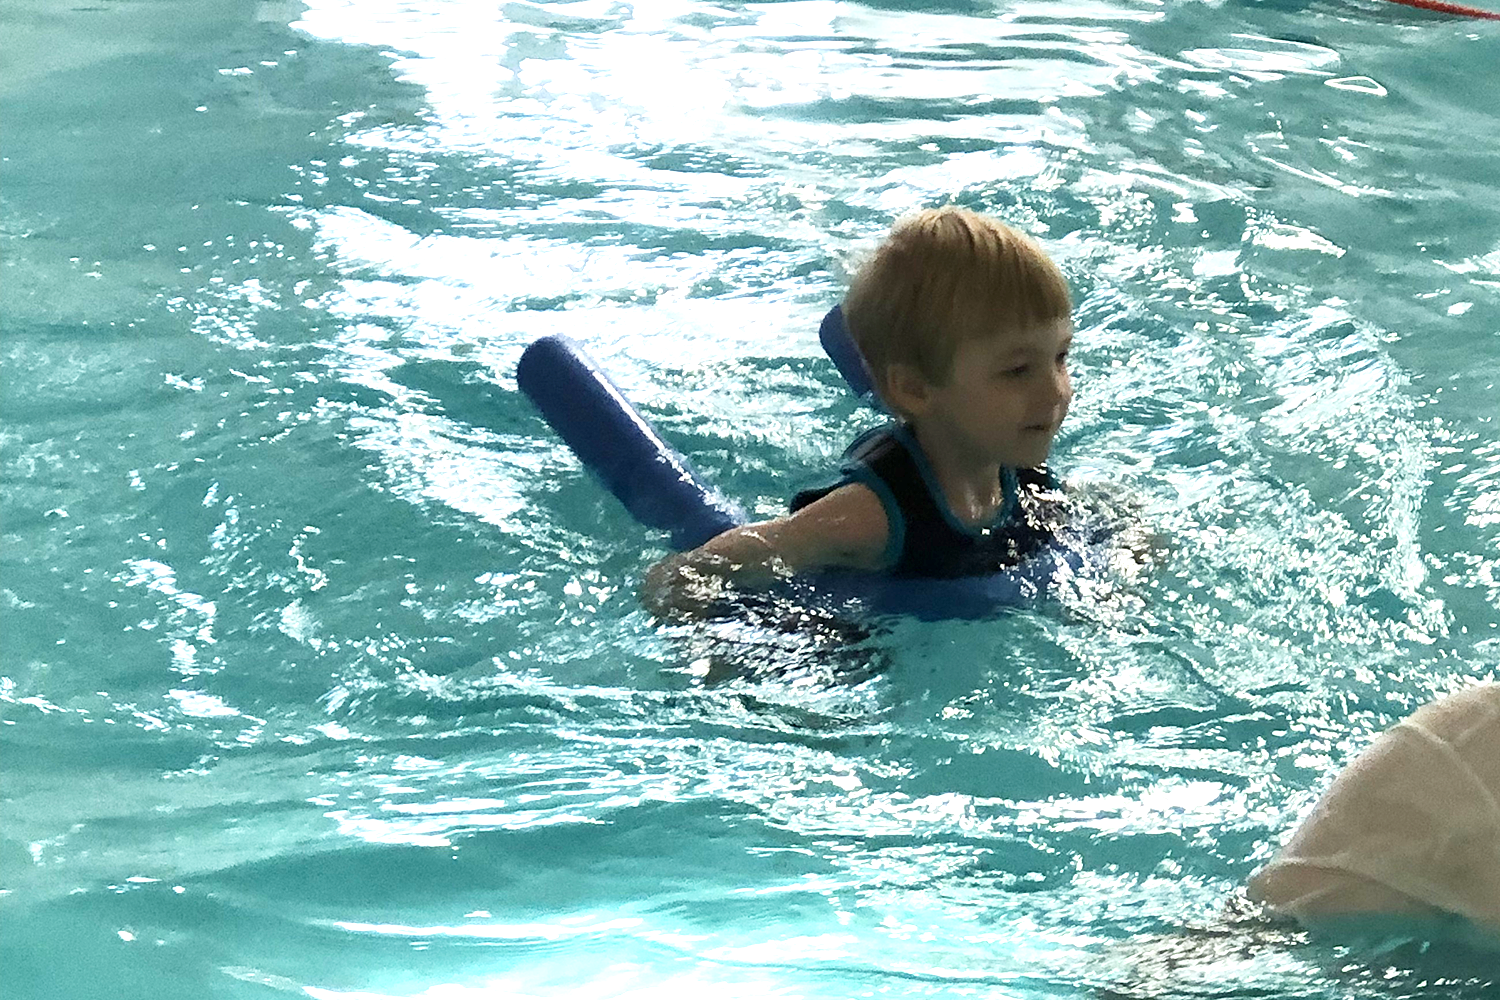 Gabe swimming with a pool noodle